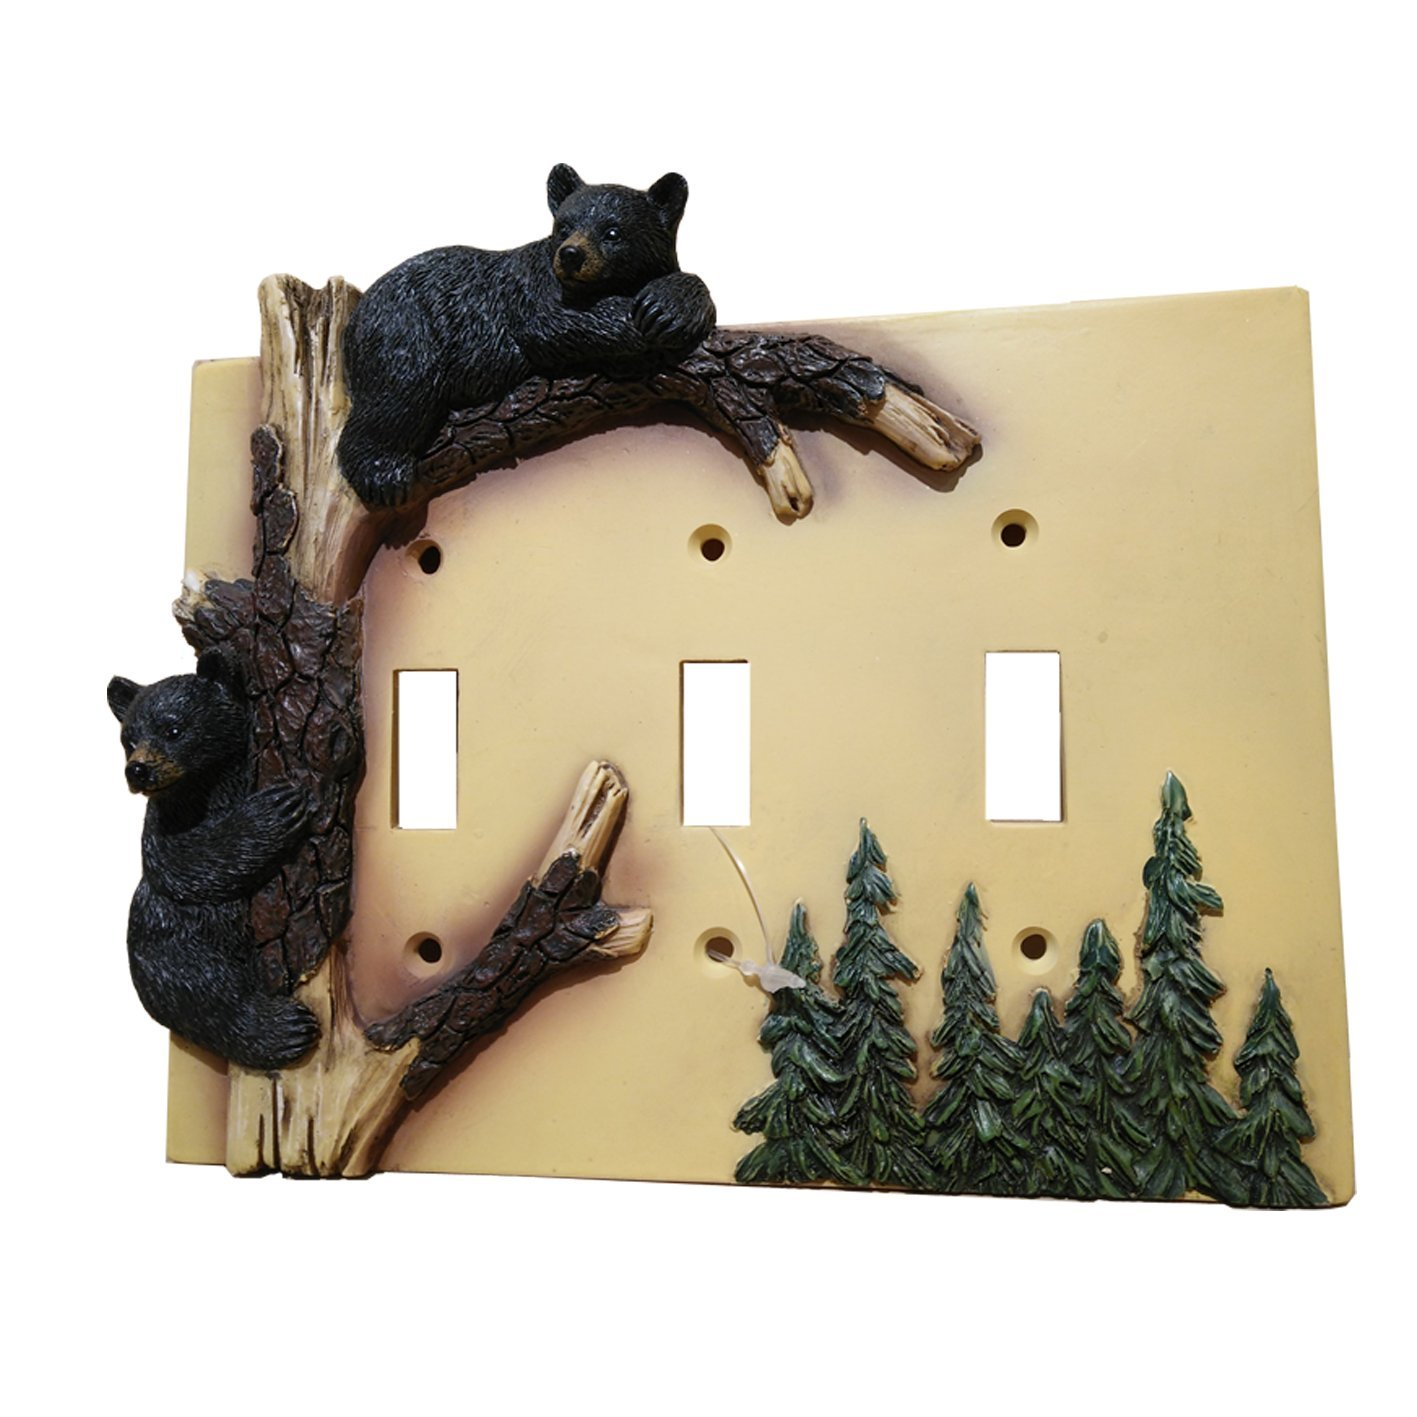 Black Bear Triple Switch Cover Home Decor - Wildlife Bear Climbing Tree Rustic Hunting with Wall Mounting Screws